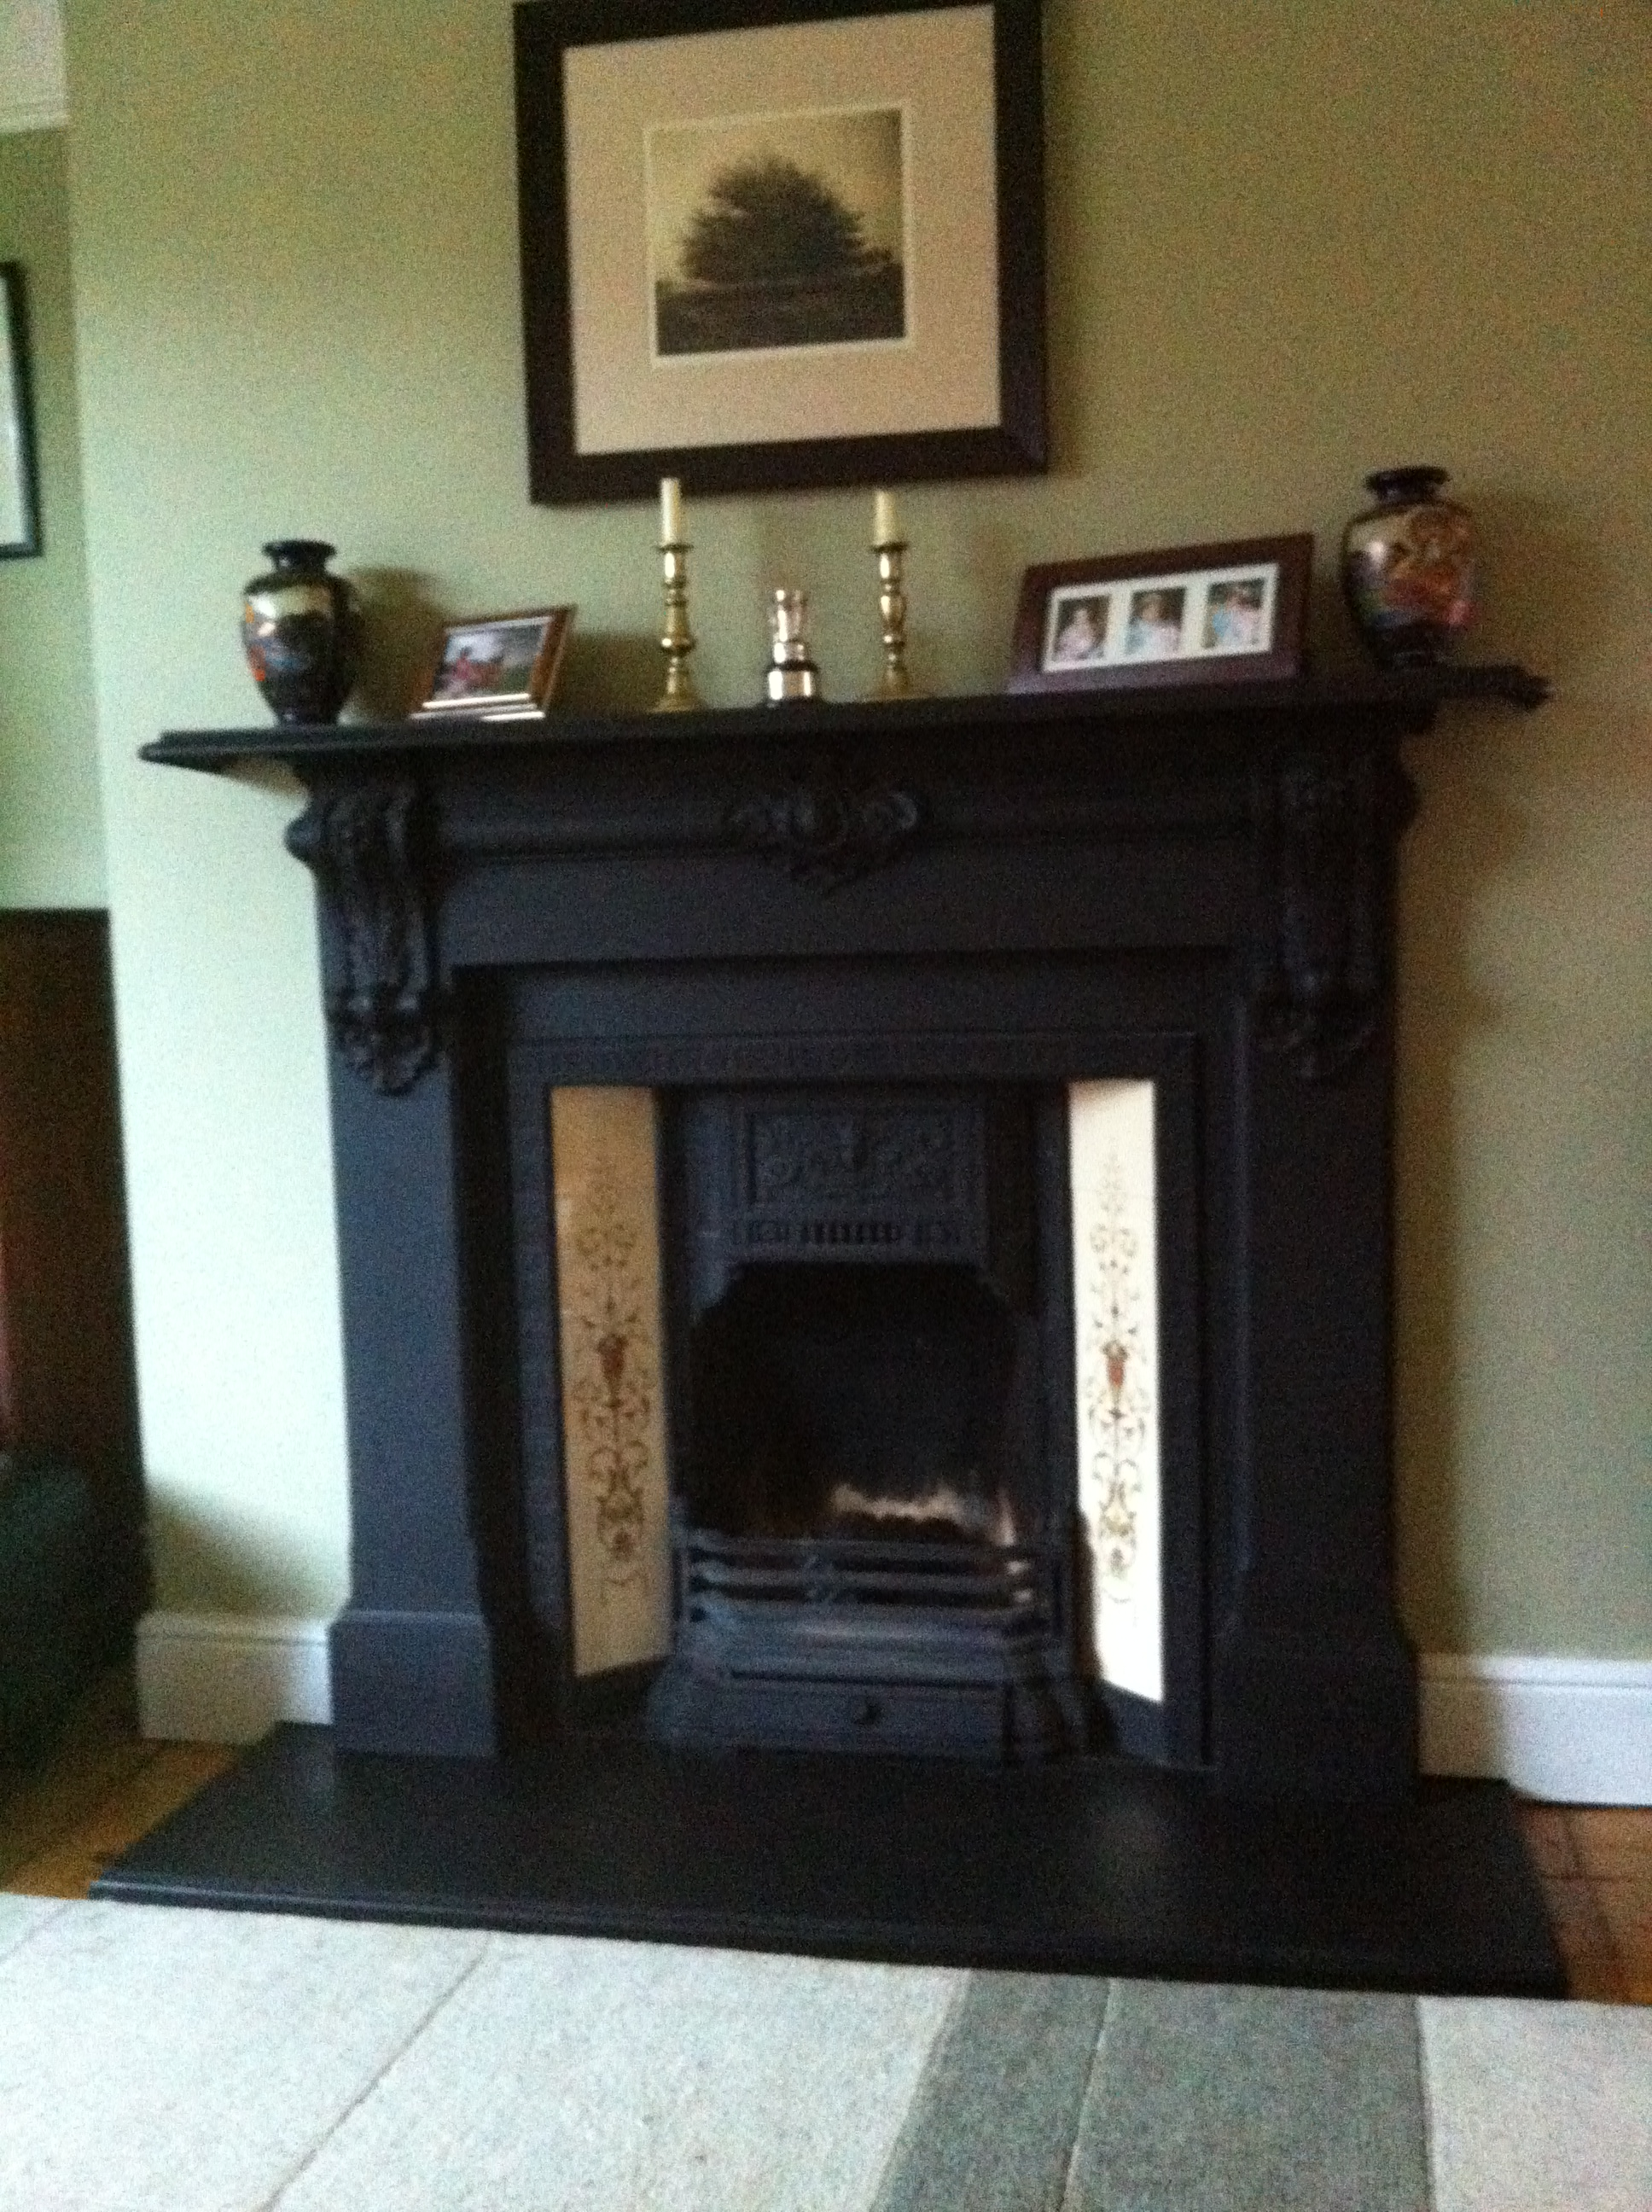 Black Fireplace Wooden Floor Cream Wall Classic Look